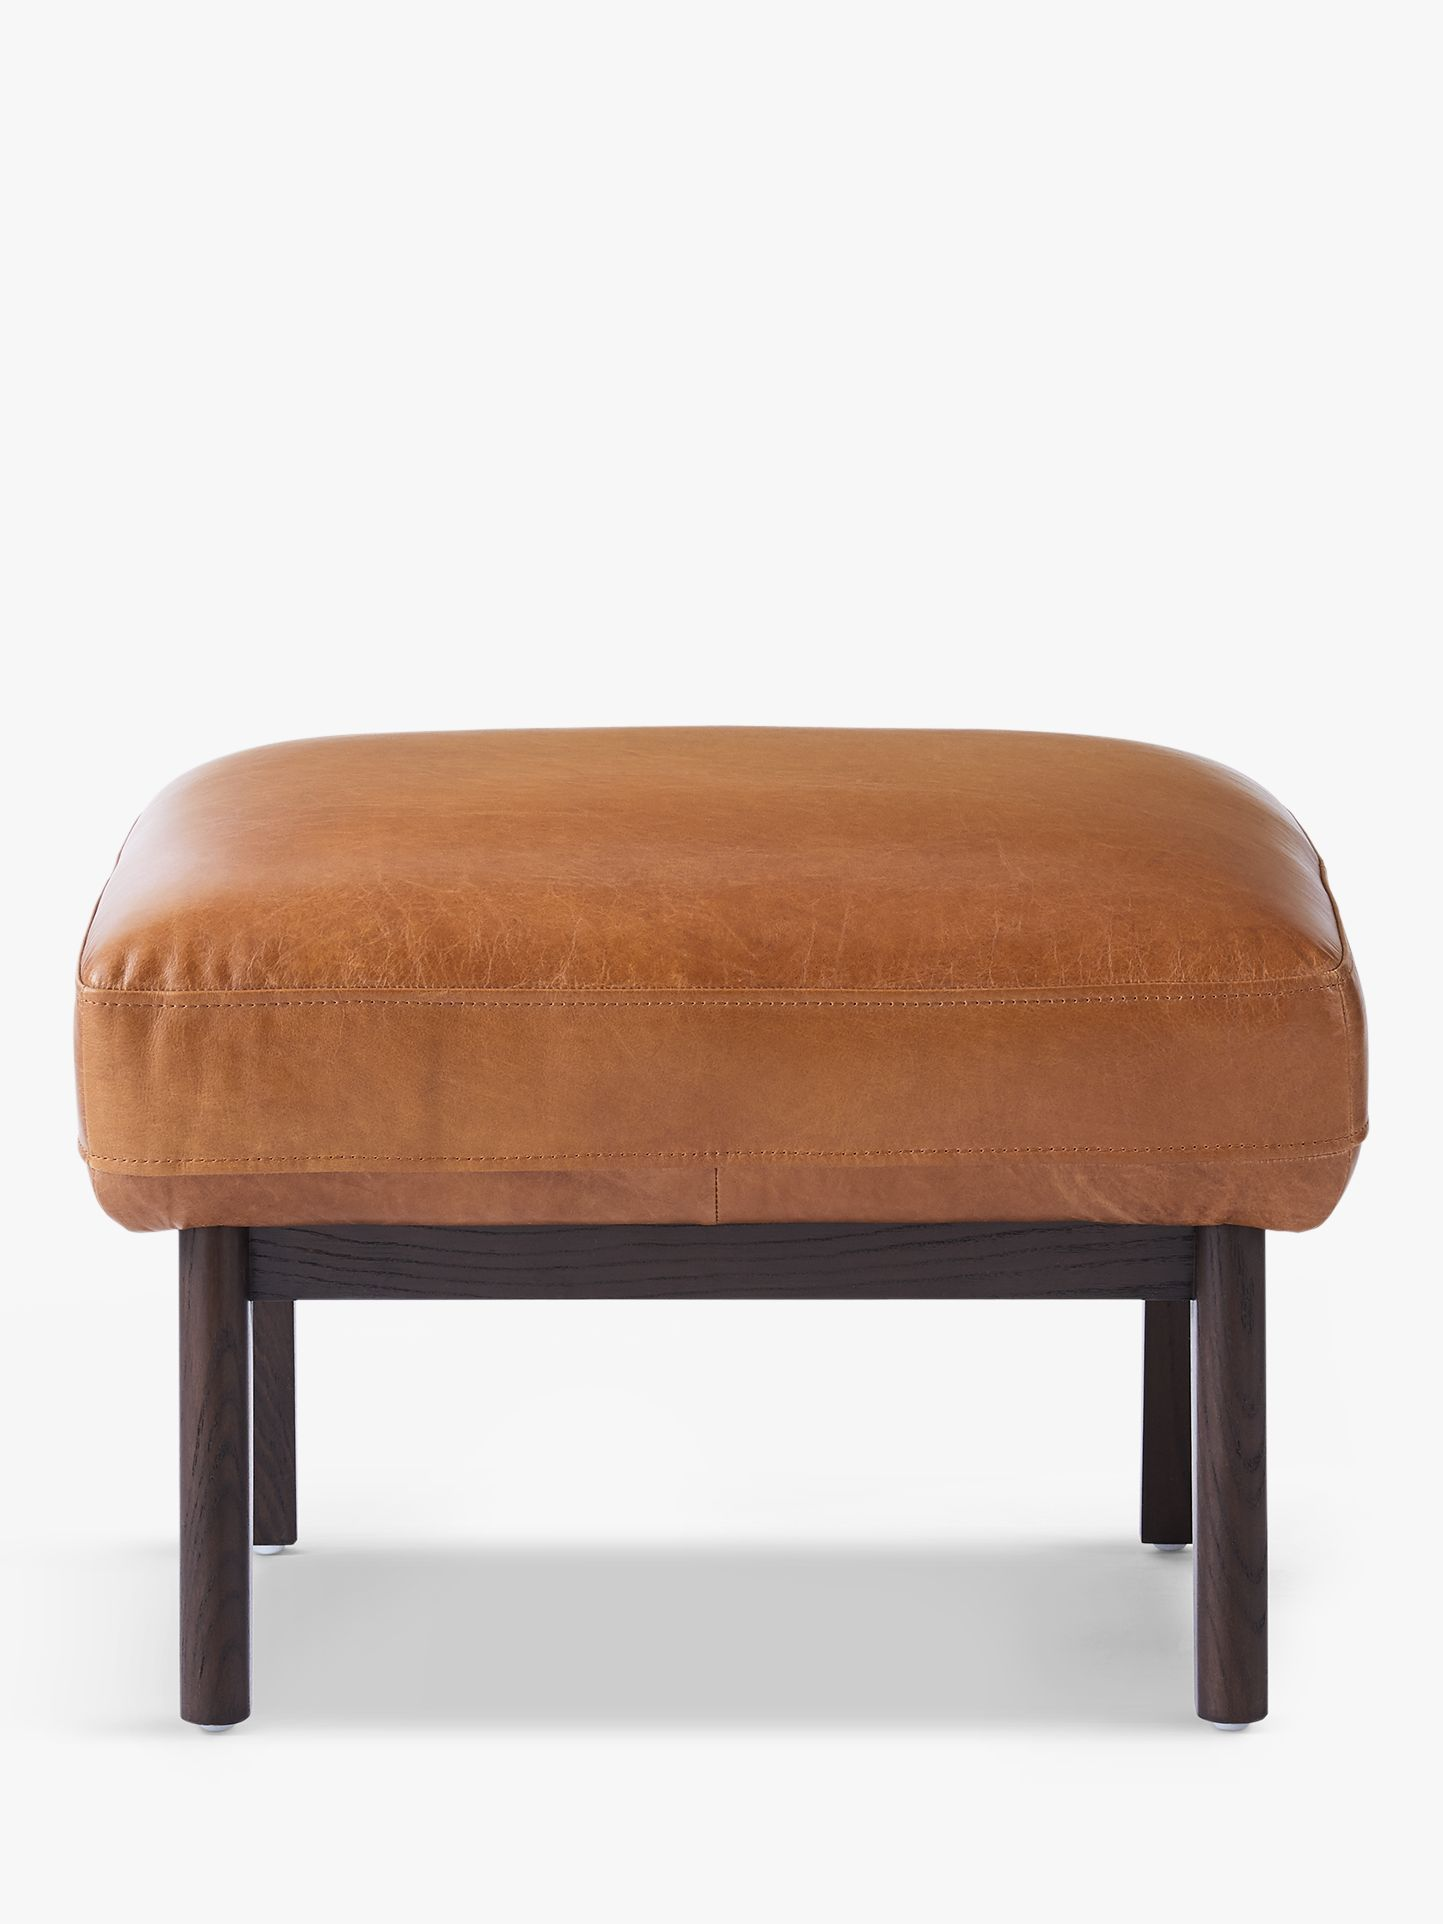 Astonishing West Elm Ryder Leather Ottoman Saddle Leather Products In Pabps2019 Chair Design Images Pabps2019Com